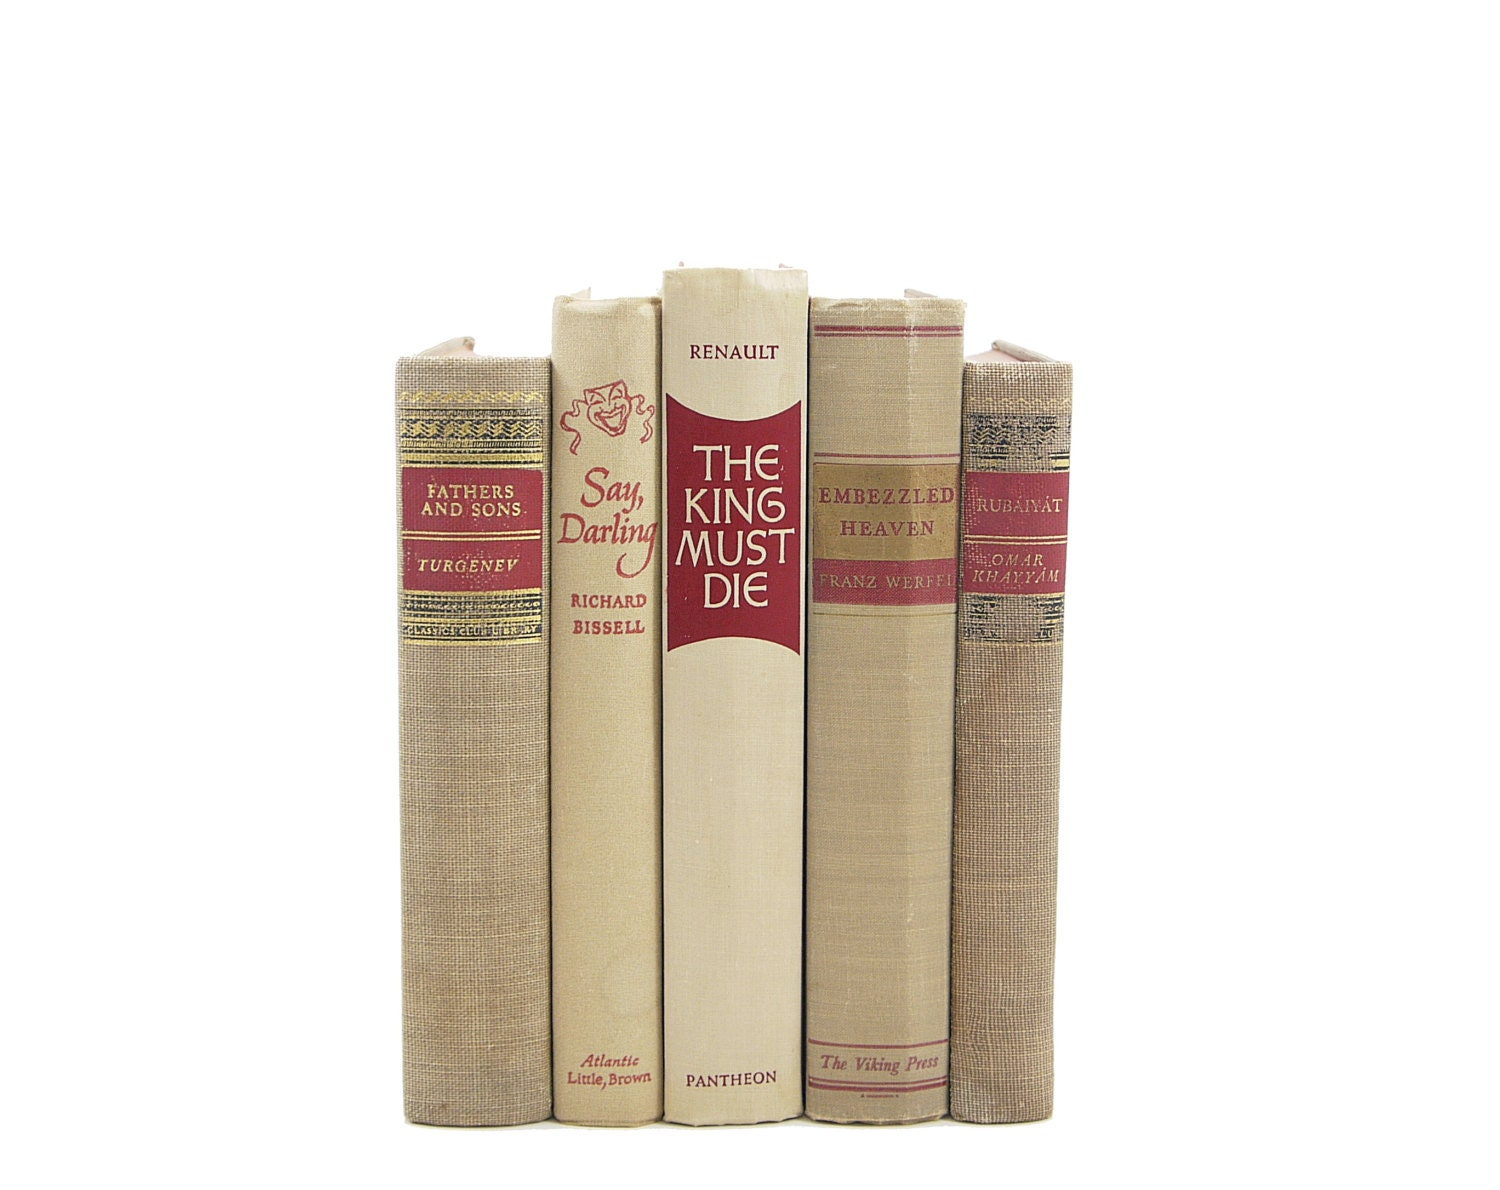 Antique beige books decorative books old rustic book decor for Antique books for decoration